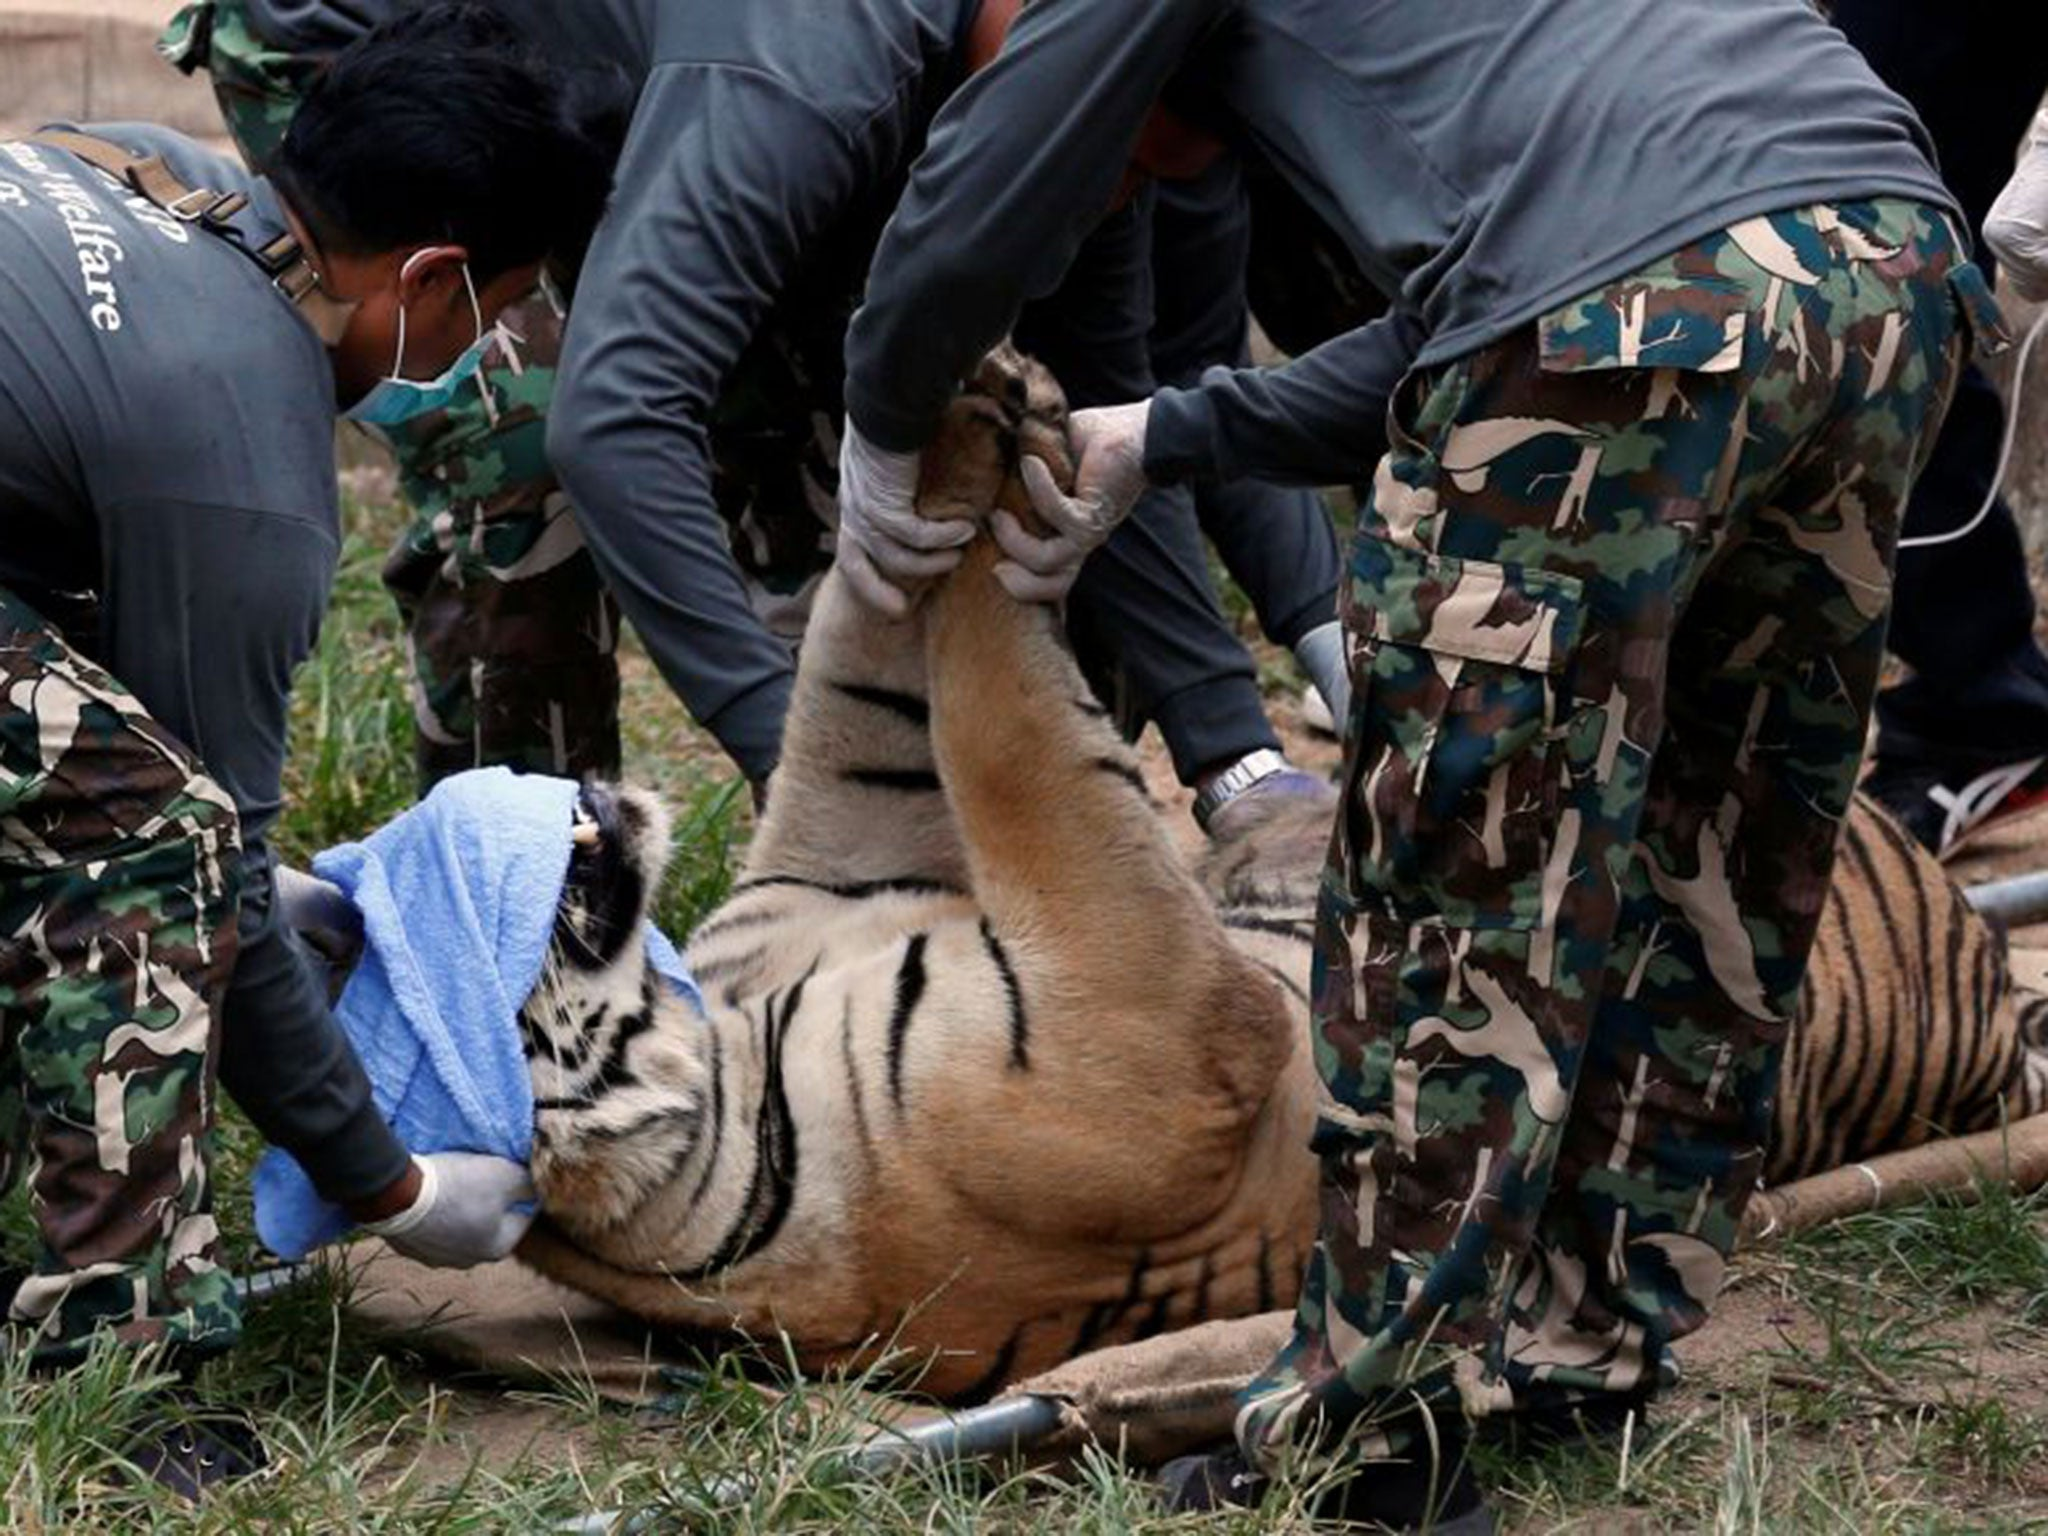 Thailand Tiger Temple: Buddhist monk caught fleeing temple with tiger skins and fangs | The Independentindependent_brand_ident_LOGOUntitled